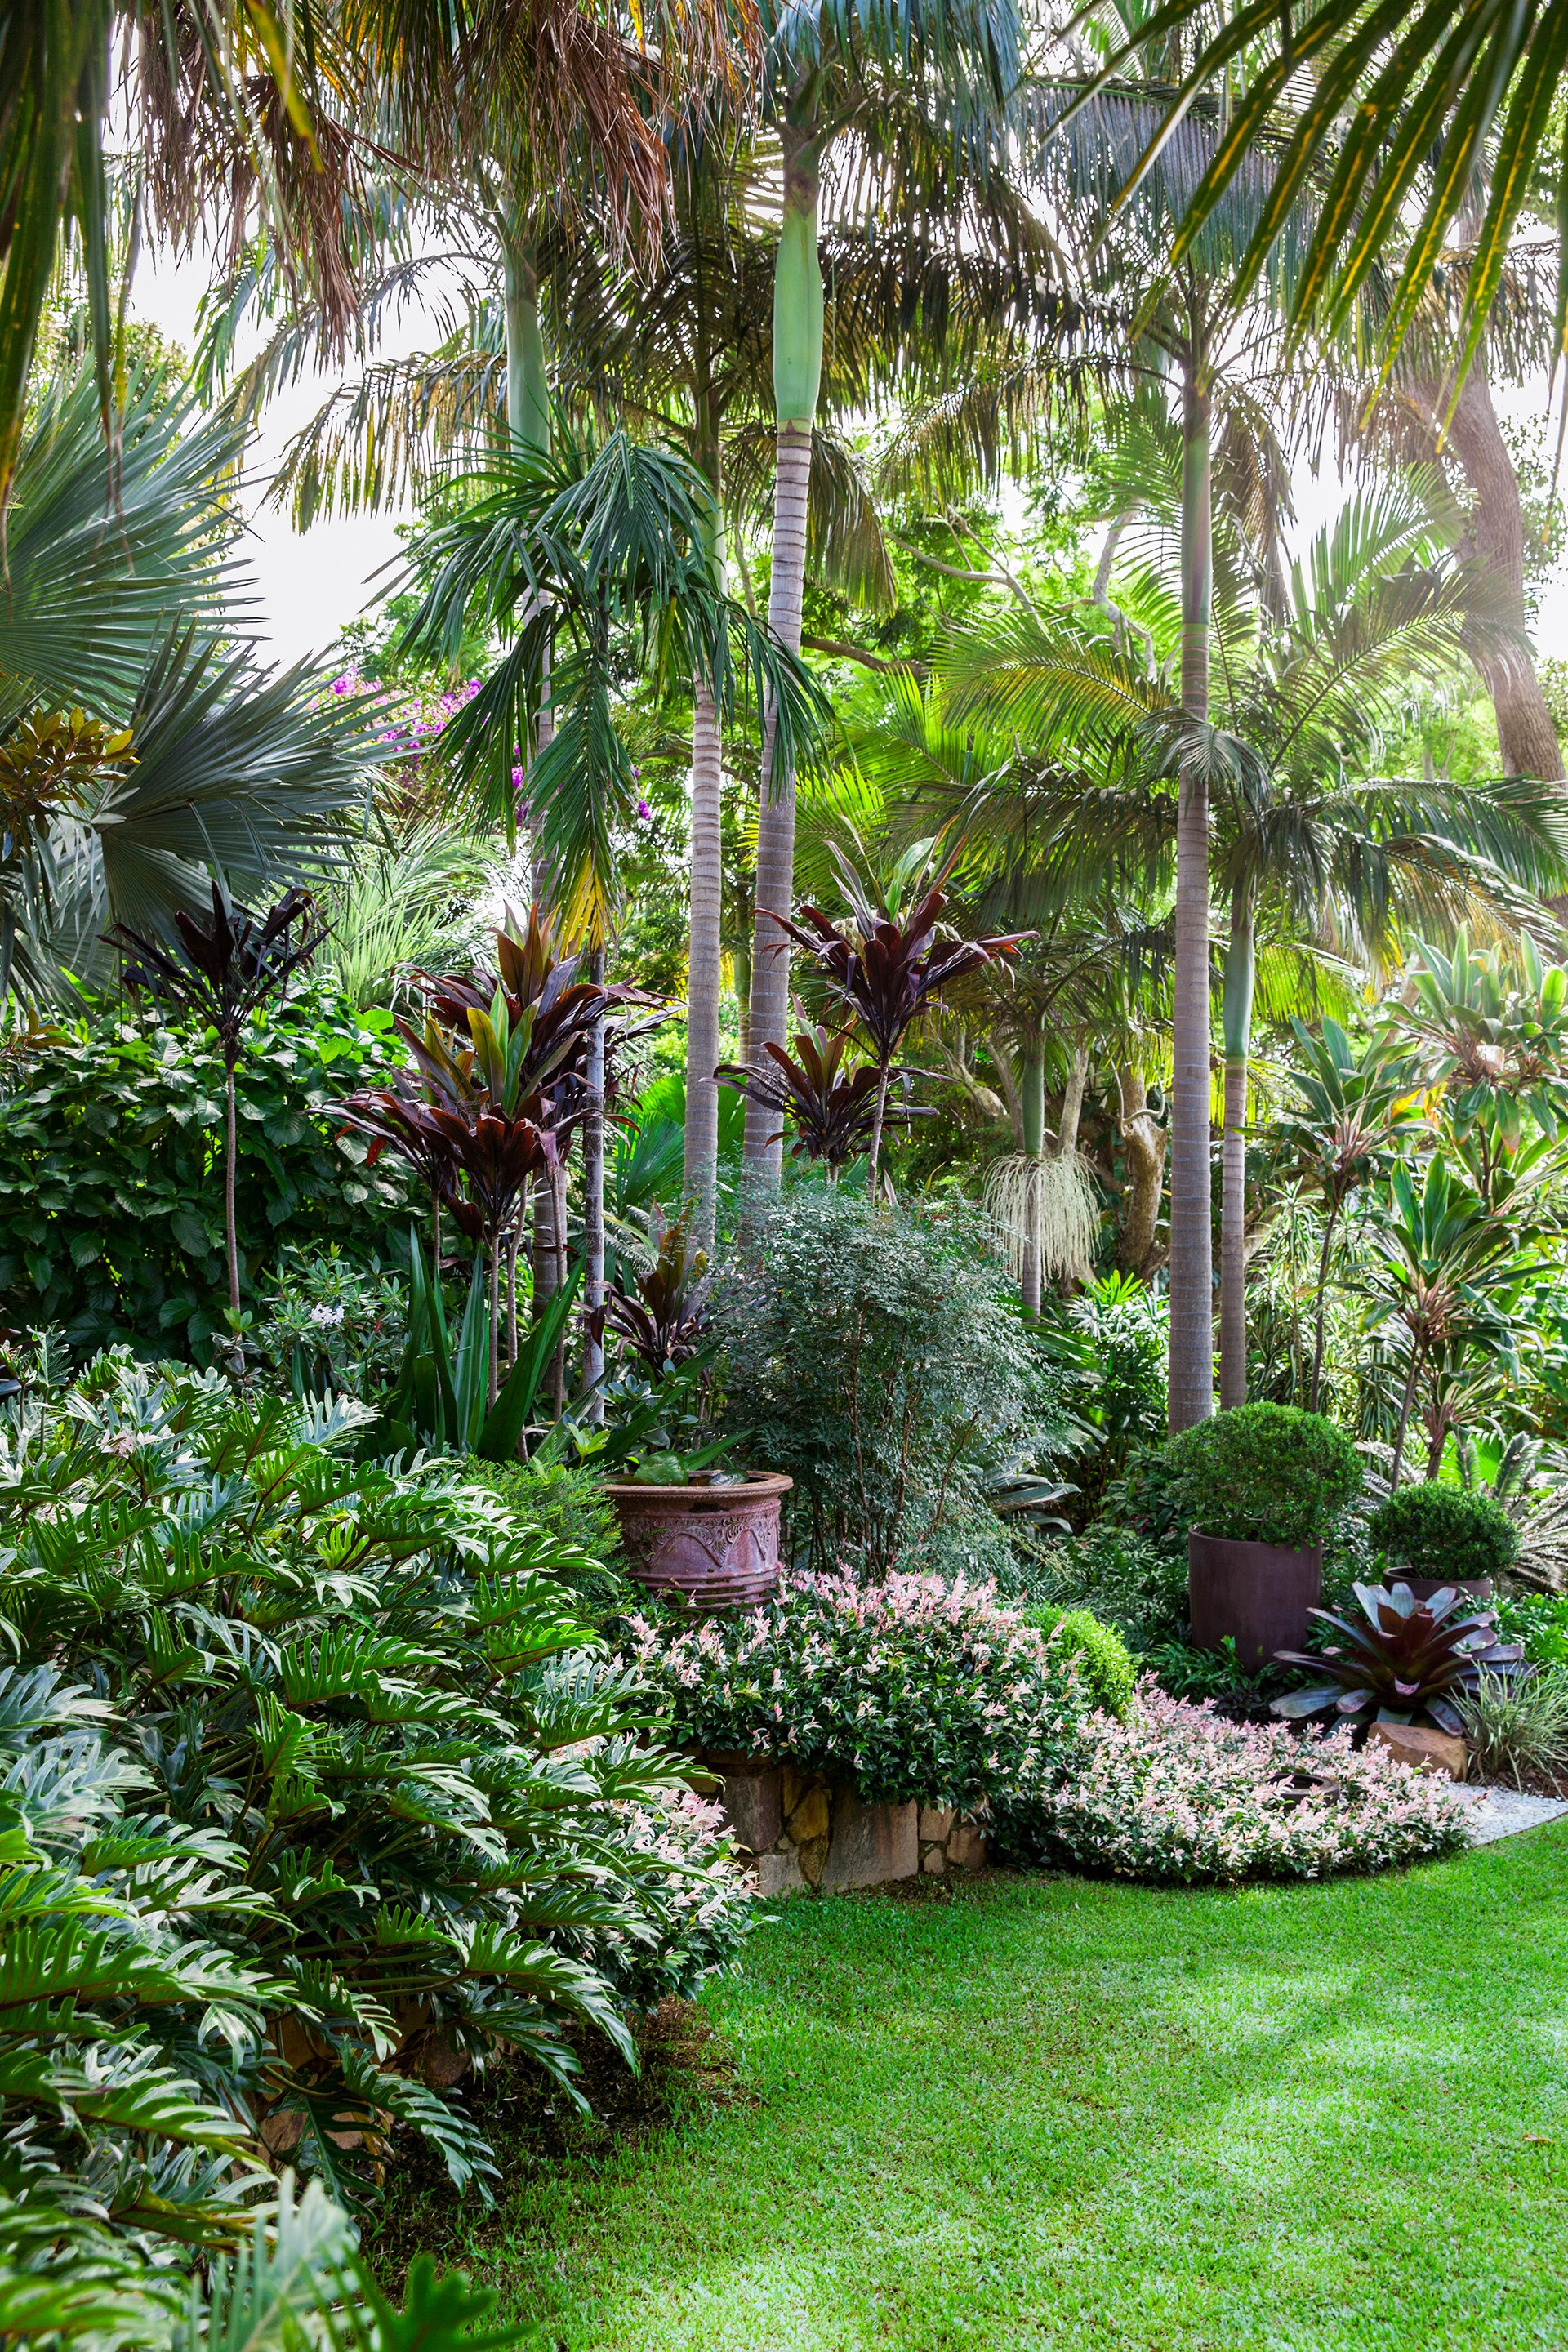 "Working with a large sloping site, landscape designer Claudia Nevell [shaped a many-layered tropical wonderland at her home on the NSW North Coast](http://www.homestolove.com.au/a-tropical-oasis-on-the-nsw-north-coast-2802|target=""_blank""). Towering palms and vast thickets of tropical plants stretch out in every direction, giving the impression that the garden occupies a luxurious tract of natural rainforest."